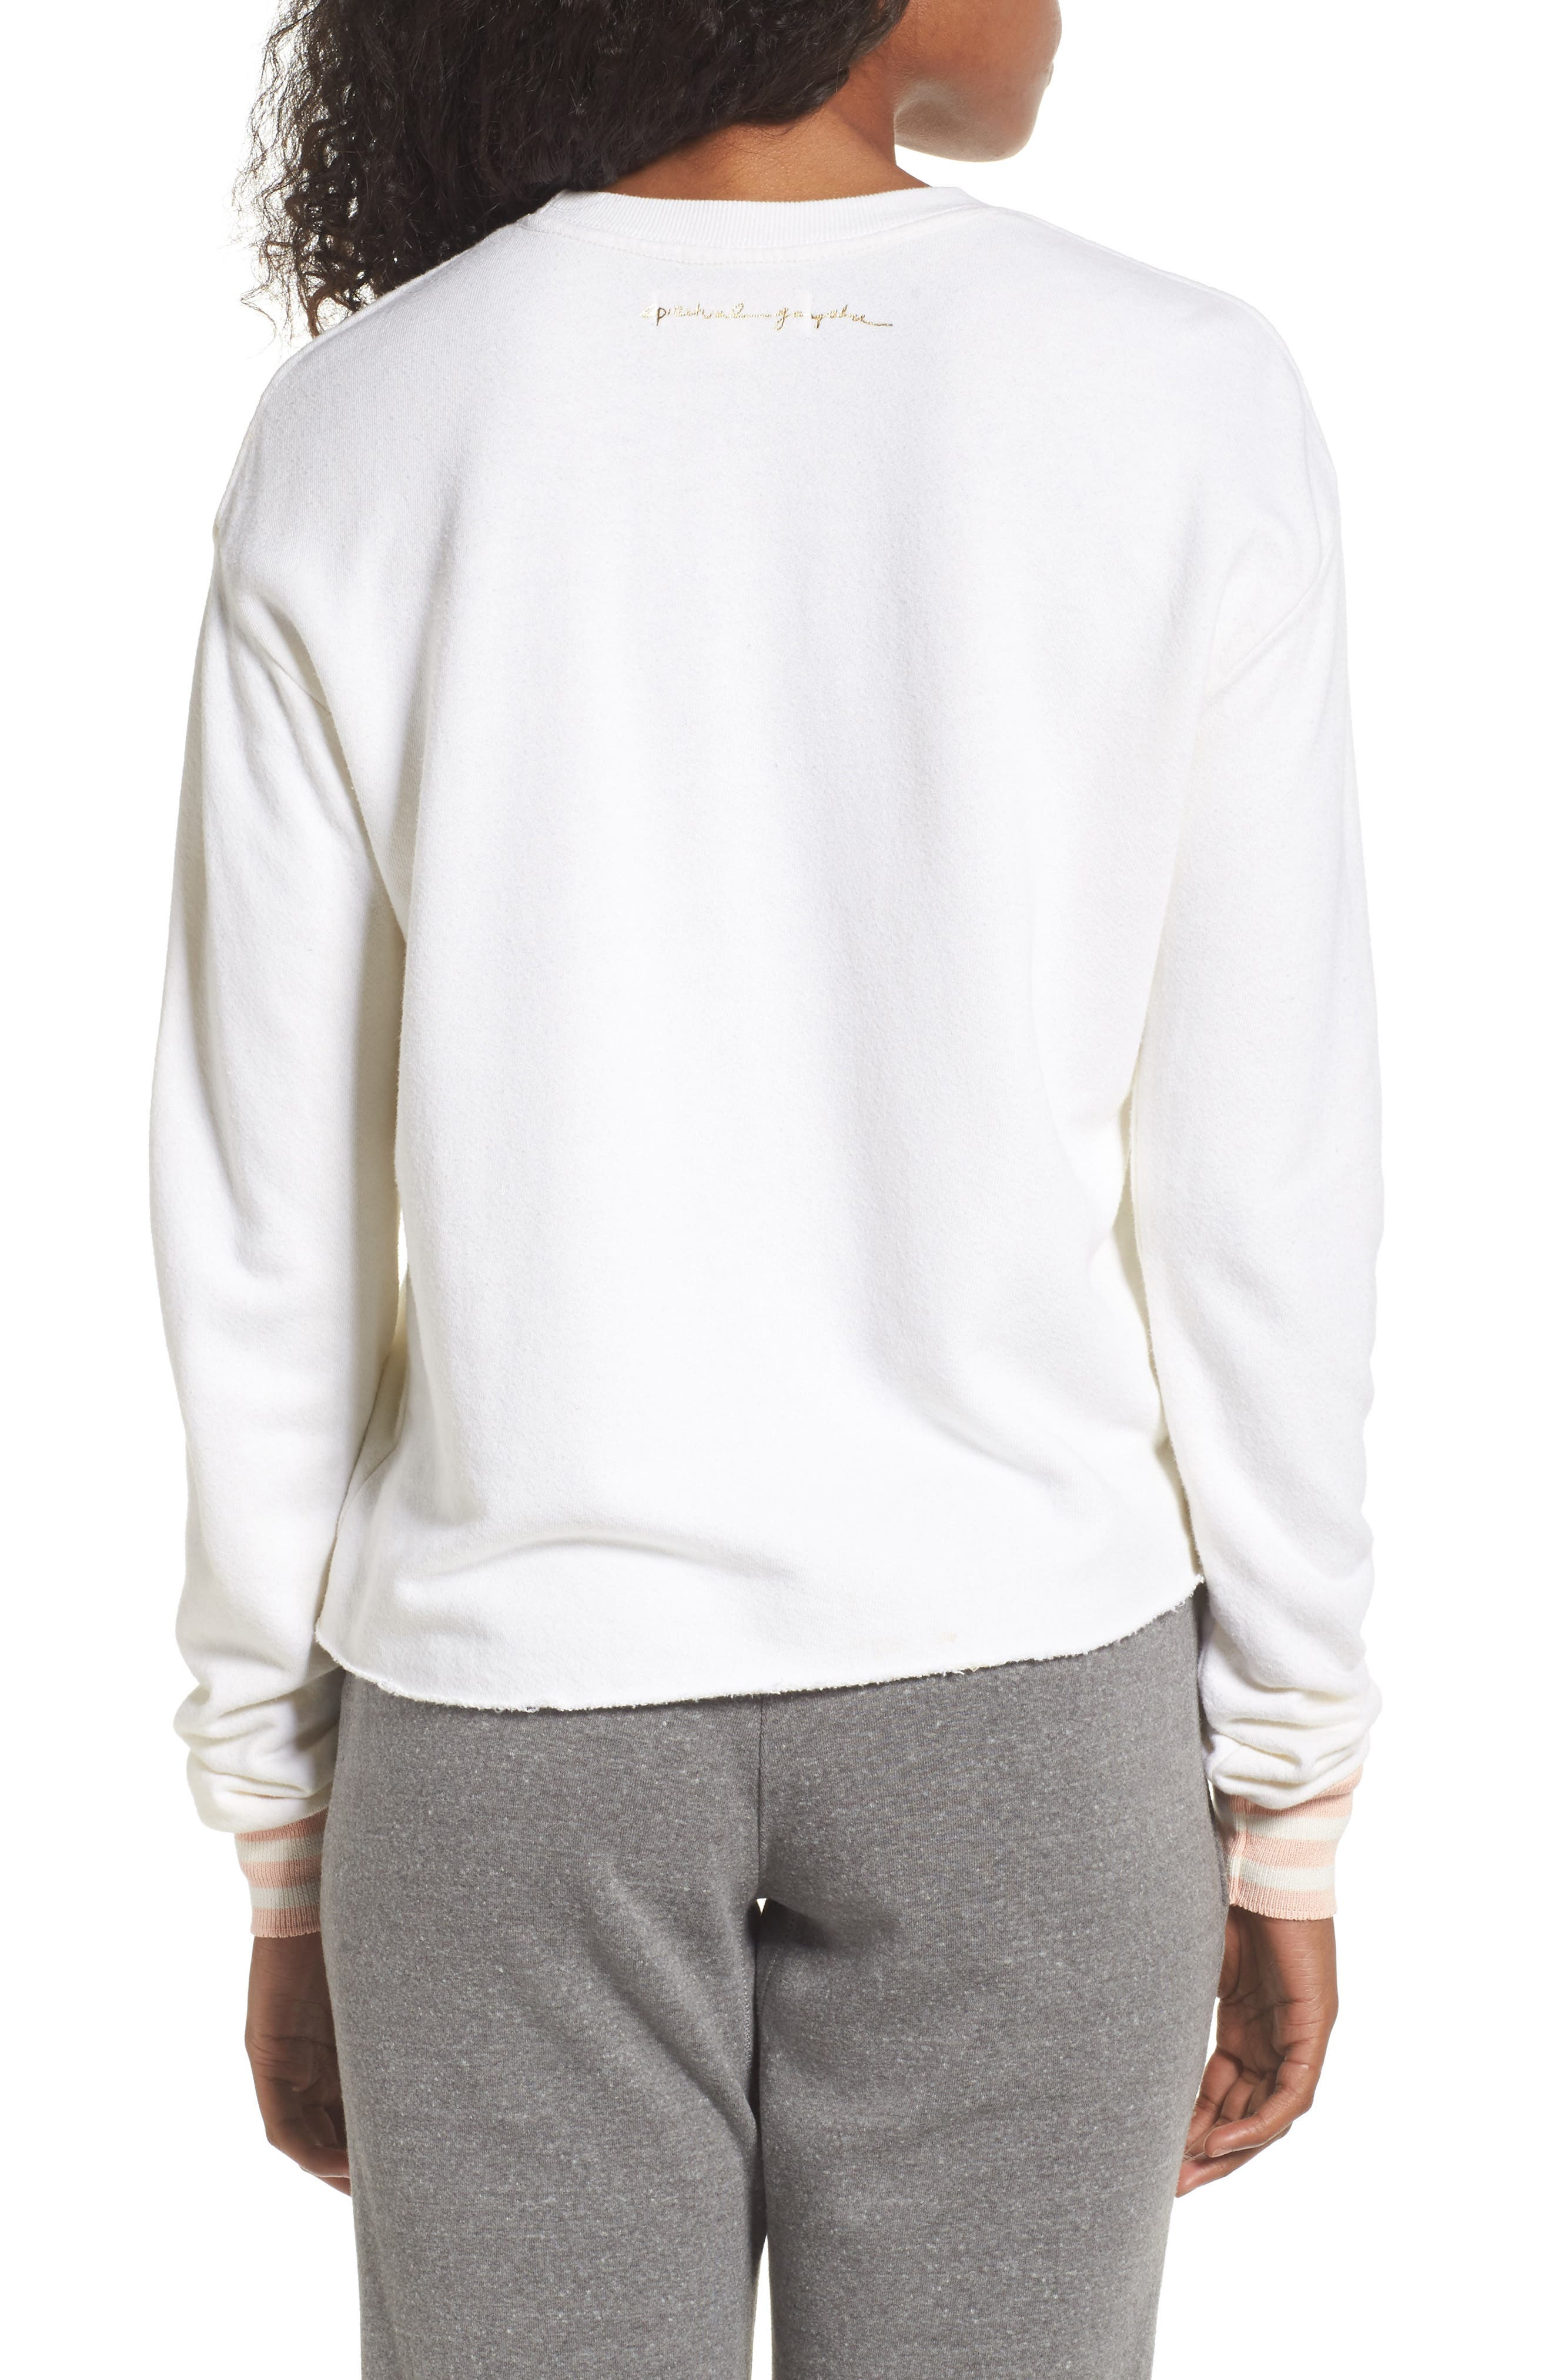 Free Spirit Crop Sweatshirt,                             Alternate thumbnail 2, color,                             Stardust